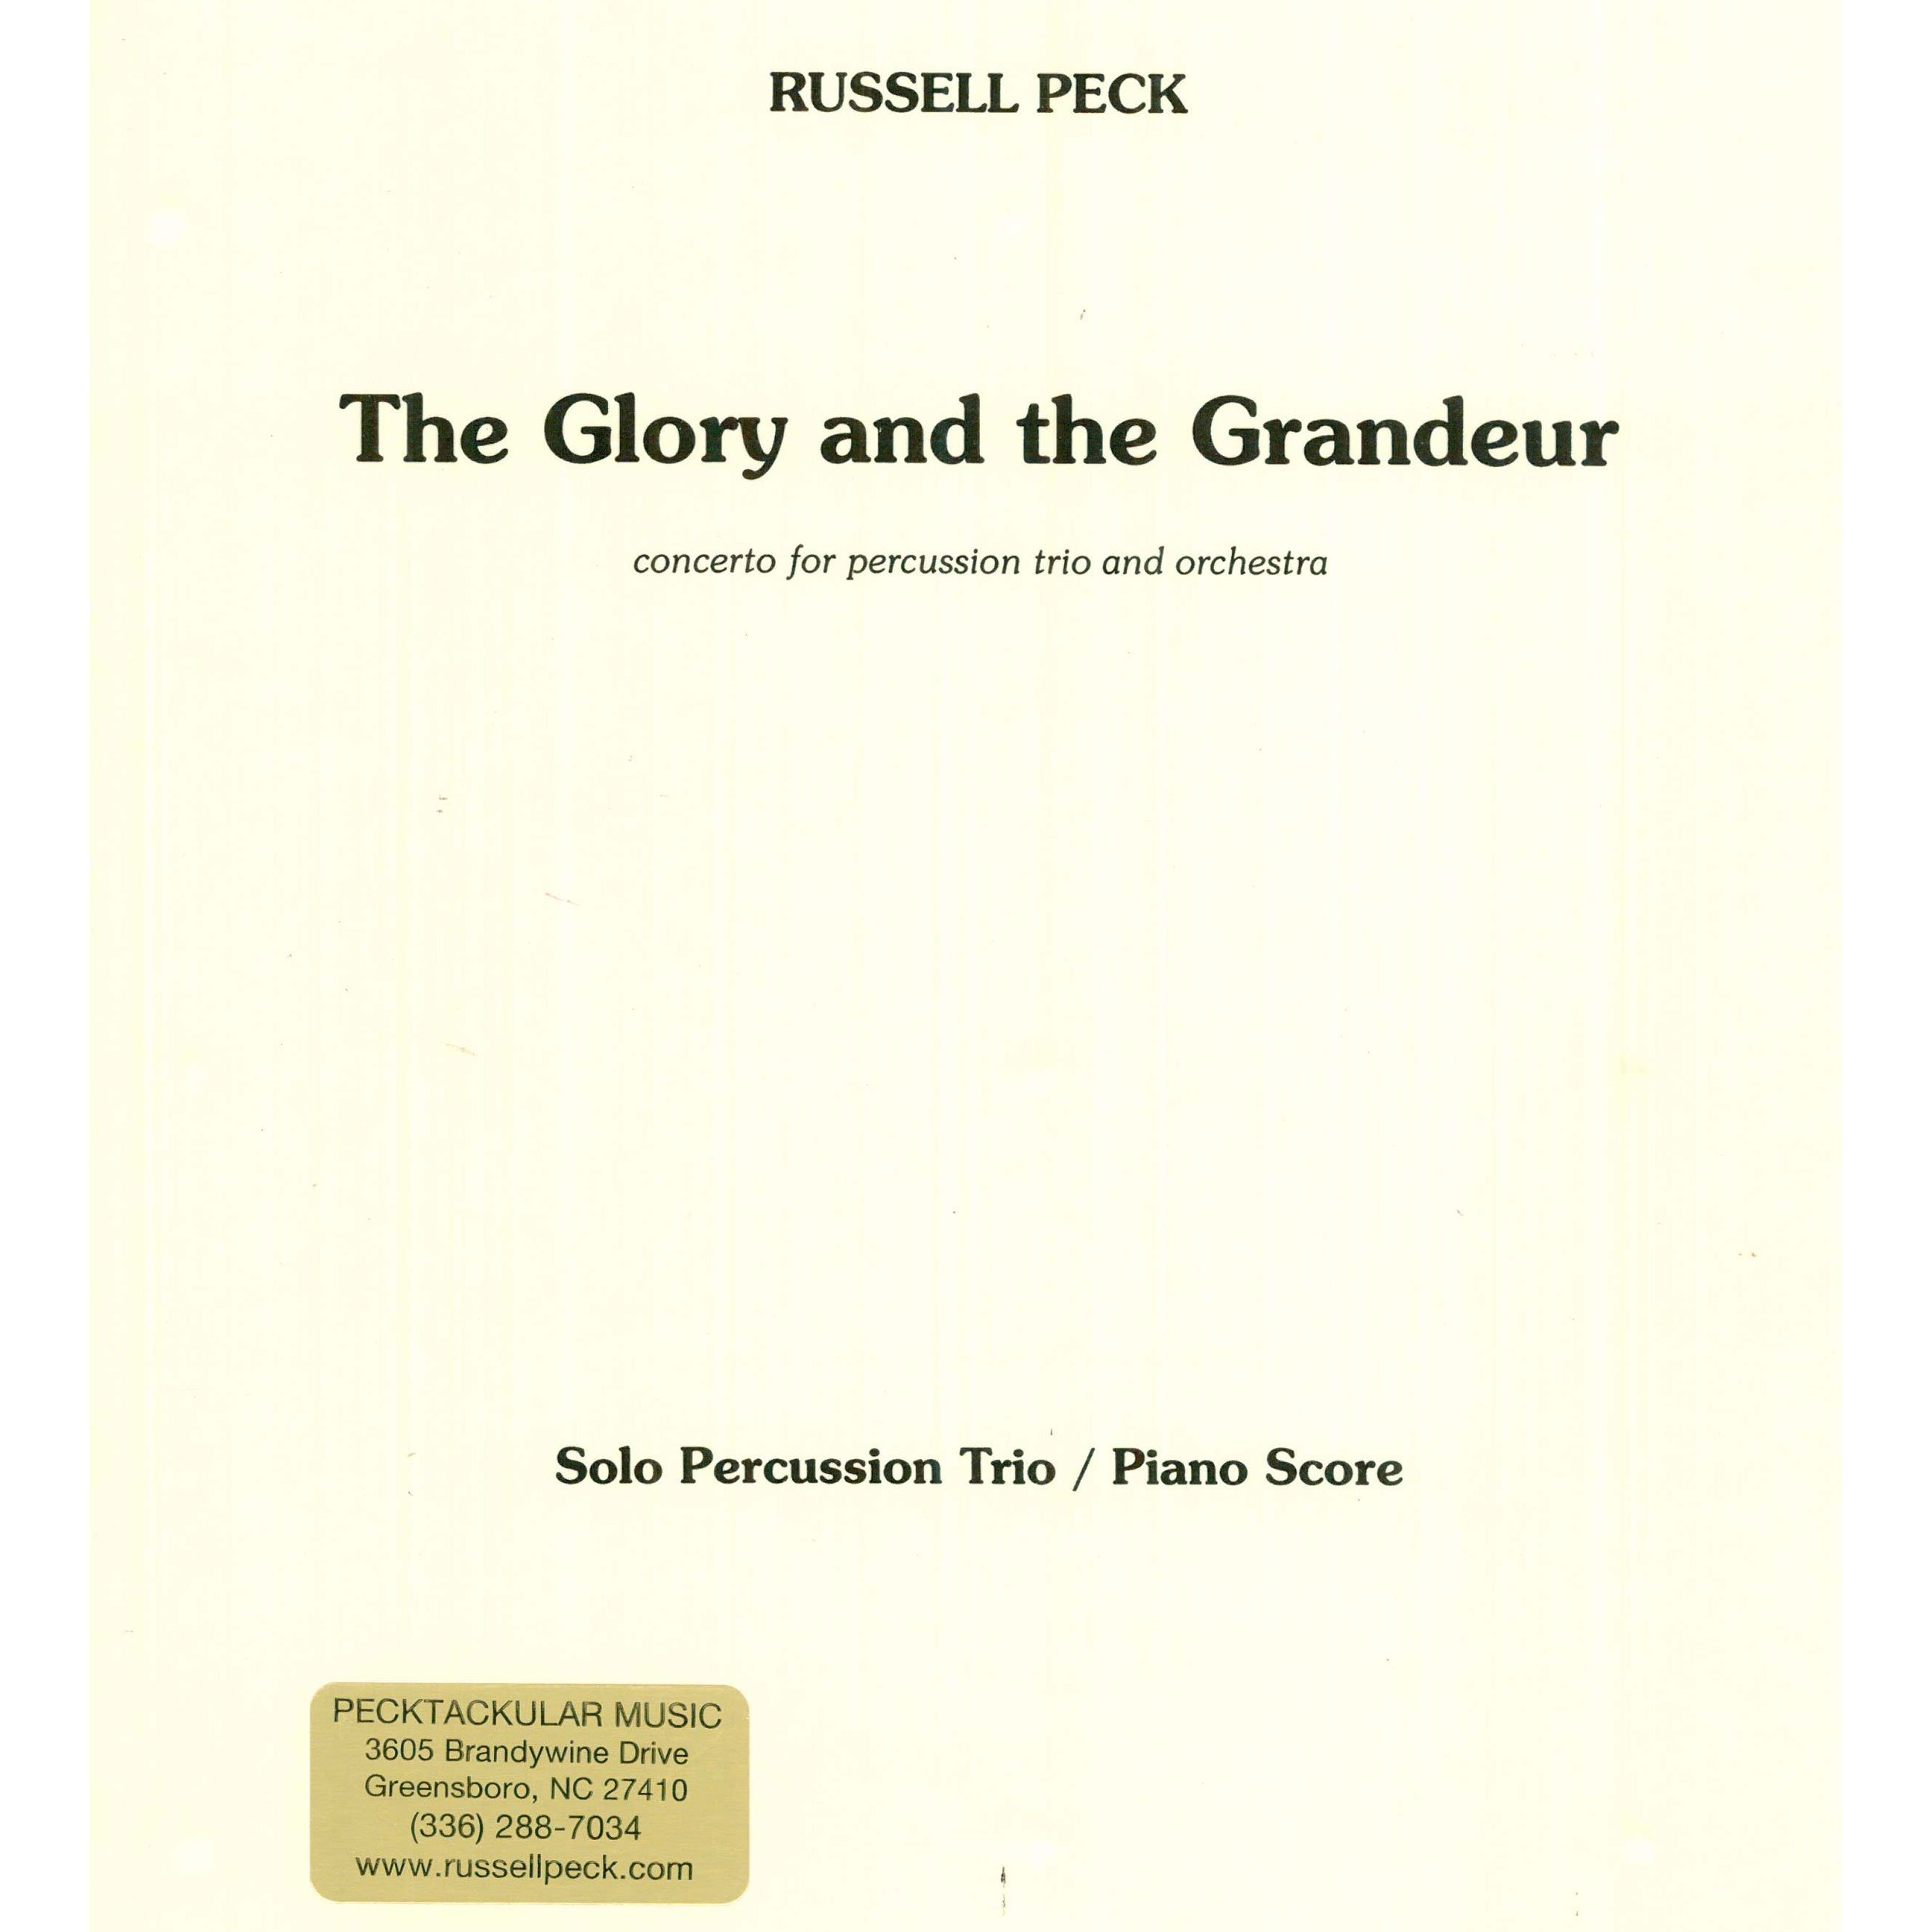 The Glory and the Grandeur by Russell Peck (Piano Reduction)